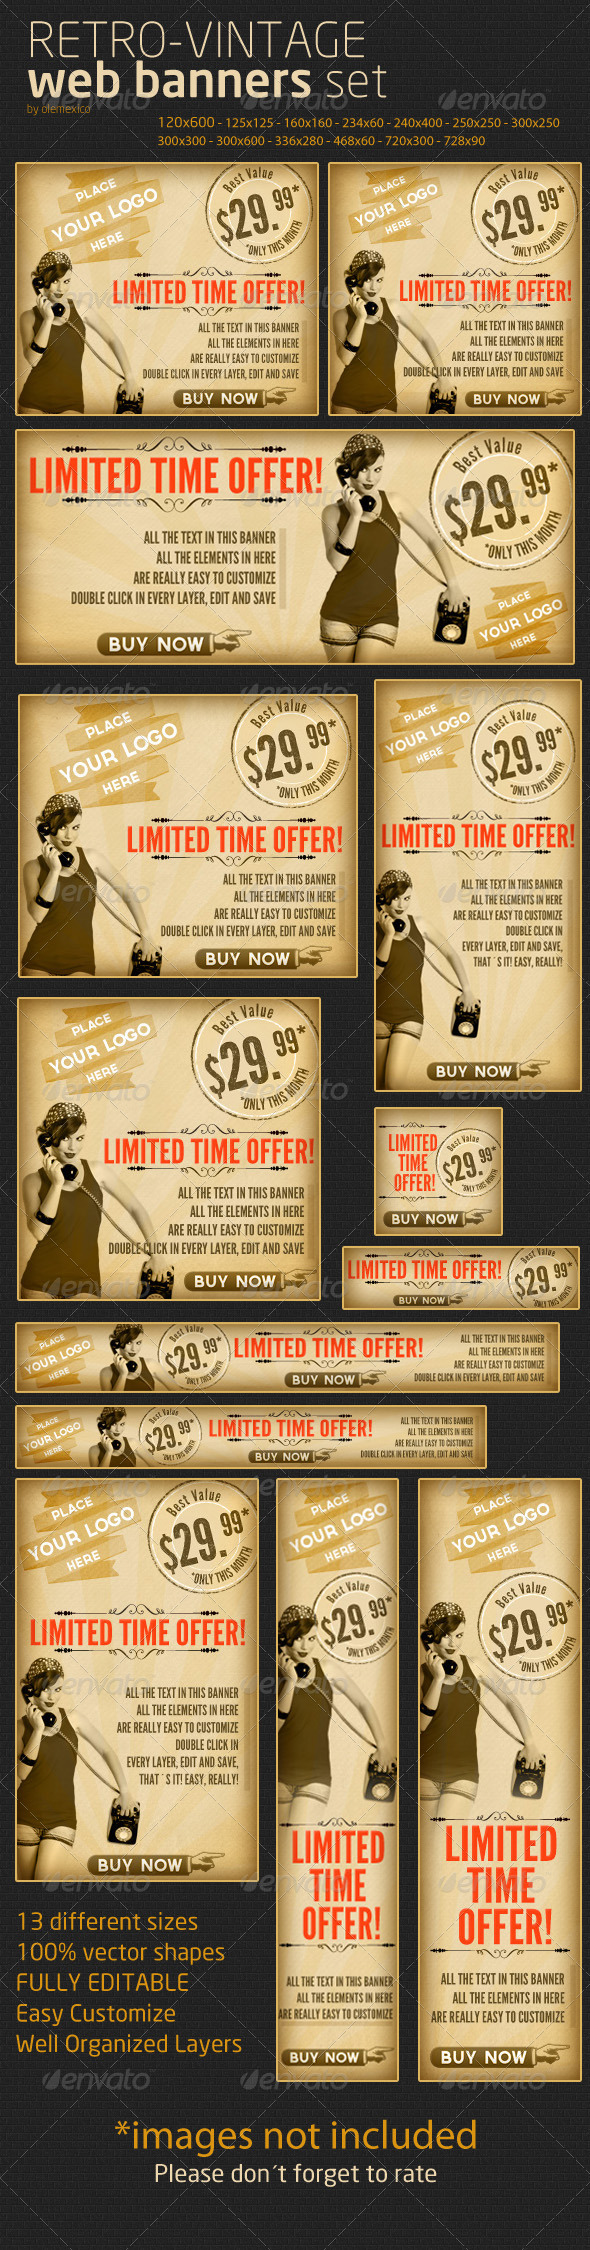 GraphicRiver Retro-Vintage Web Banner Set 2550809